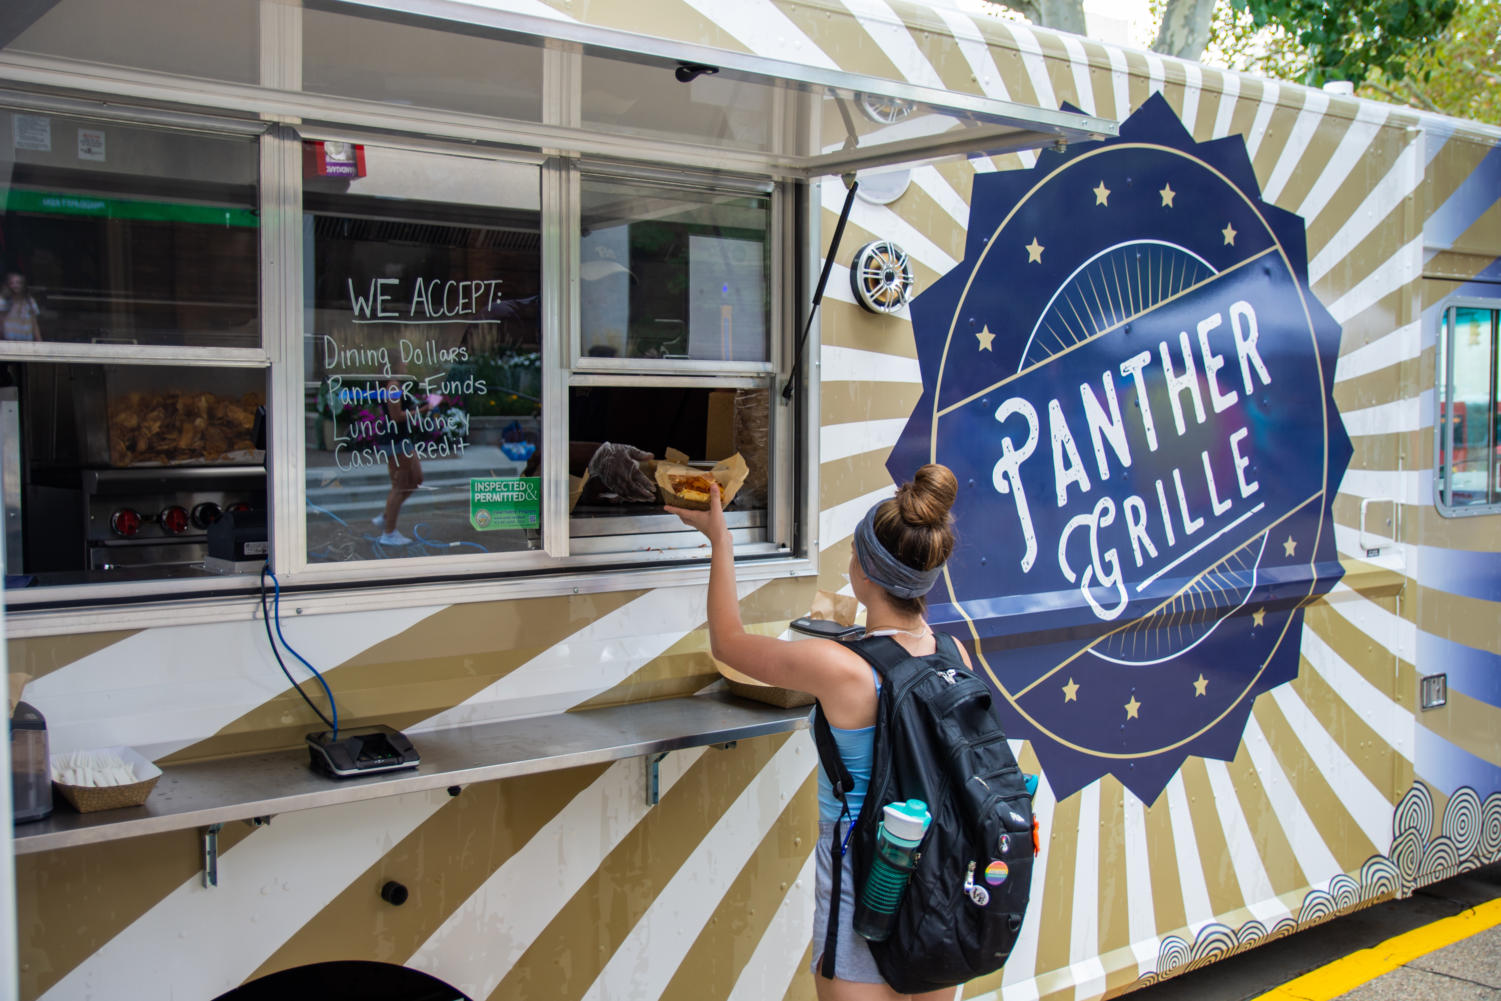 The Panther Grille food truck, seen here parked outside the William Pitt Union, can be found at various locations throughout lower campus. (Photo by Bader Abdulmajeed | Staff Photographer)